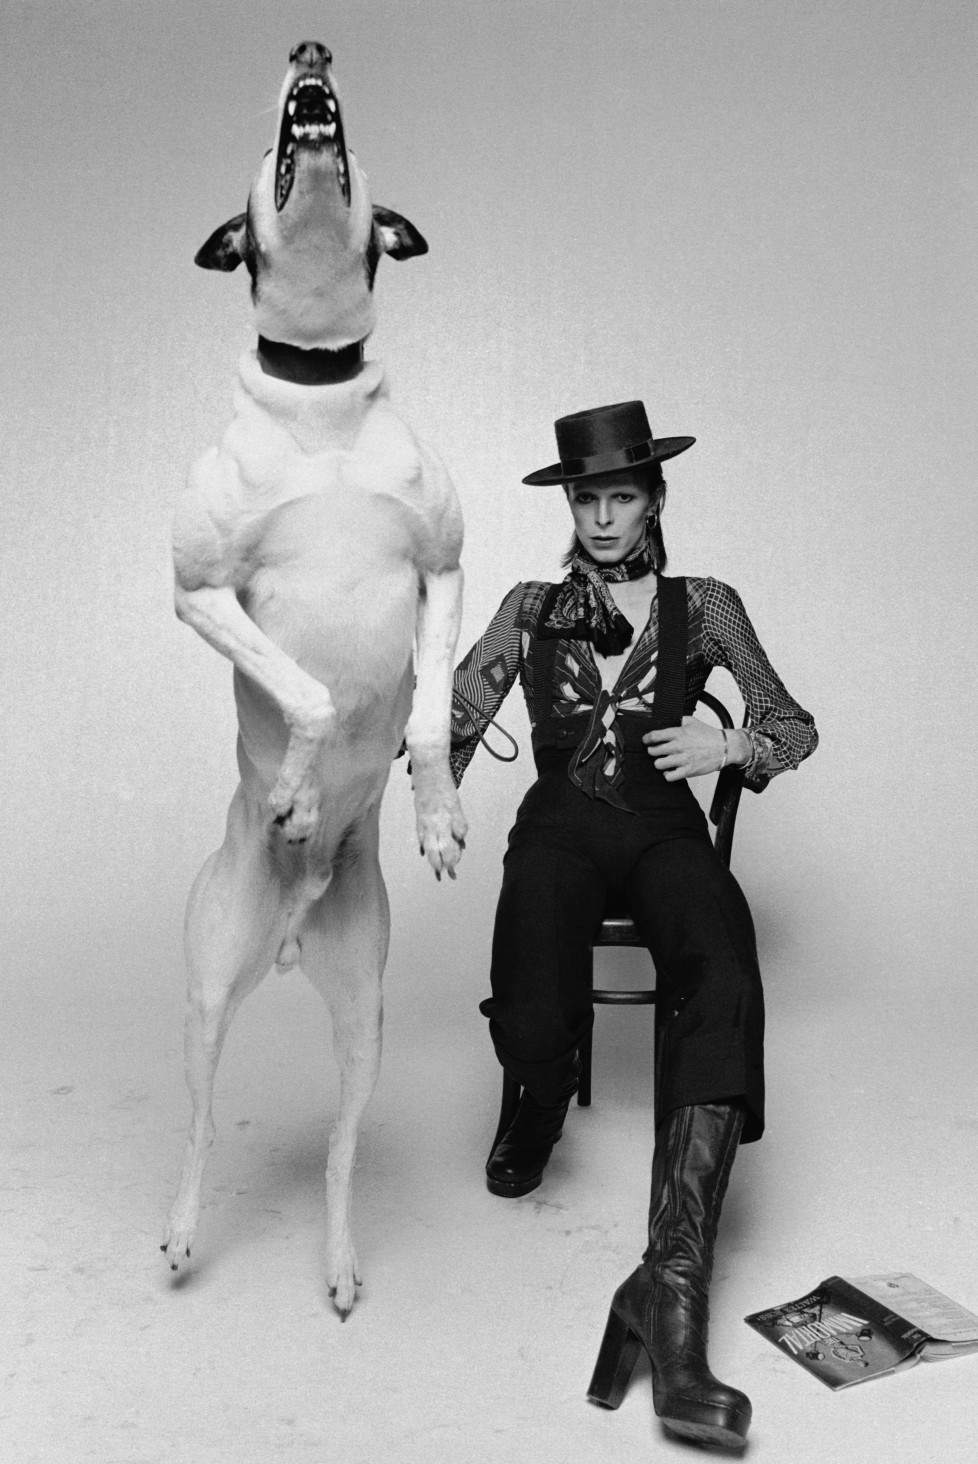 Singer David Bowie posing with a large barking dog while working on the artwork for his 1974 album 'Diamond Dogs' in London. (Photo by Terry O'Neill/Getty Images)